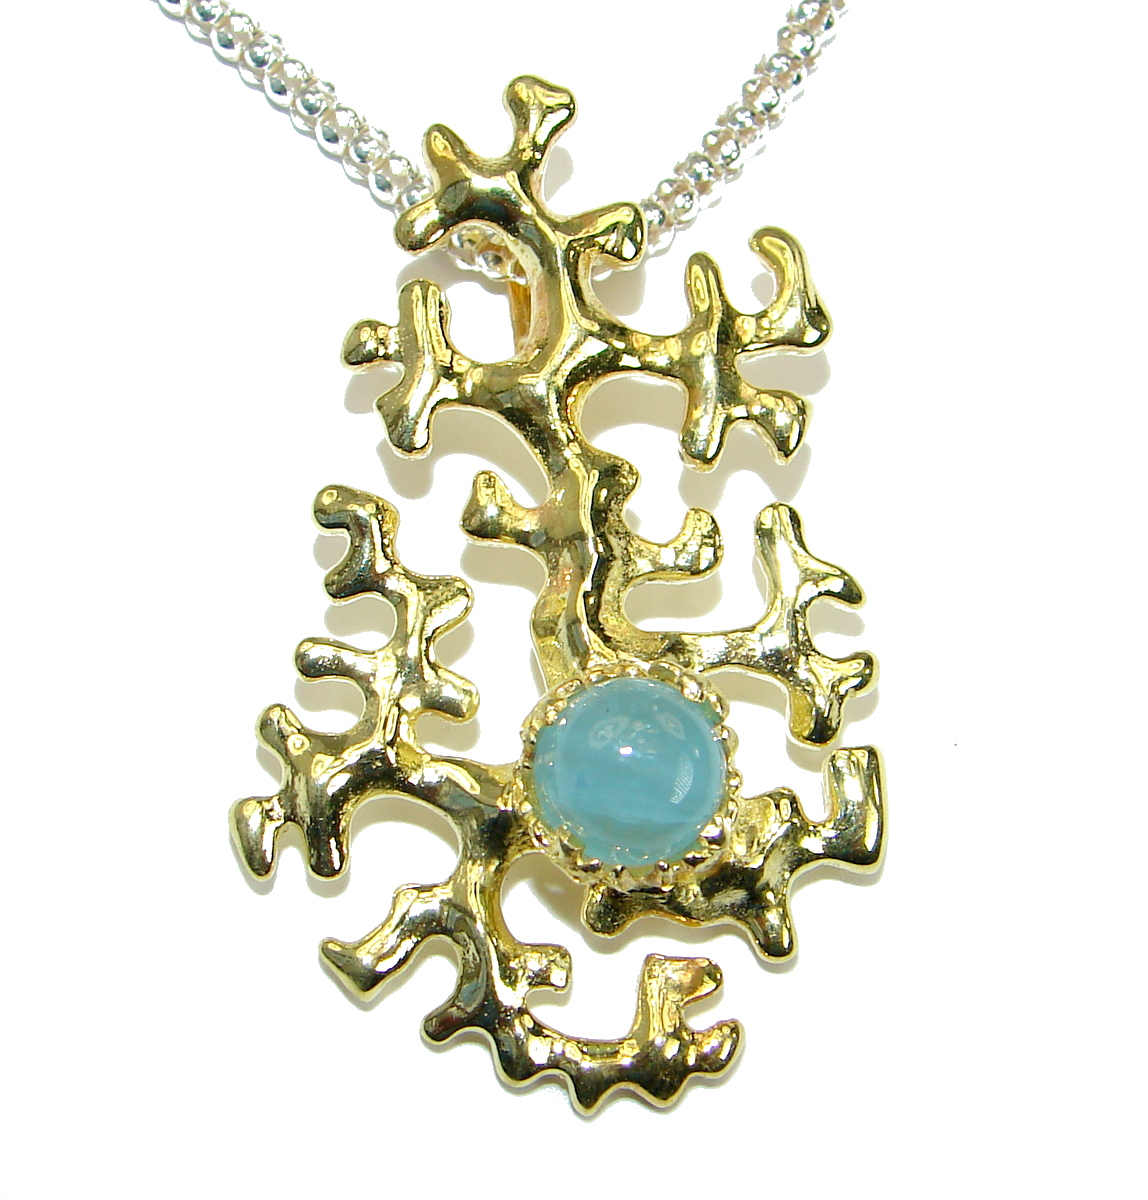 True Art genuine Aquamarine 14K Gold over Rhodium over .925 Sterling Silver handcrafted necklace